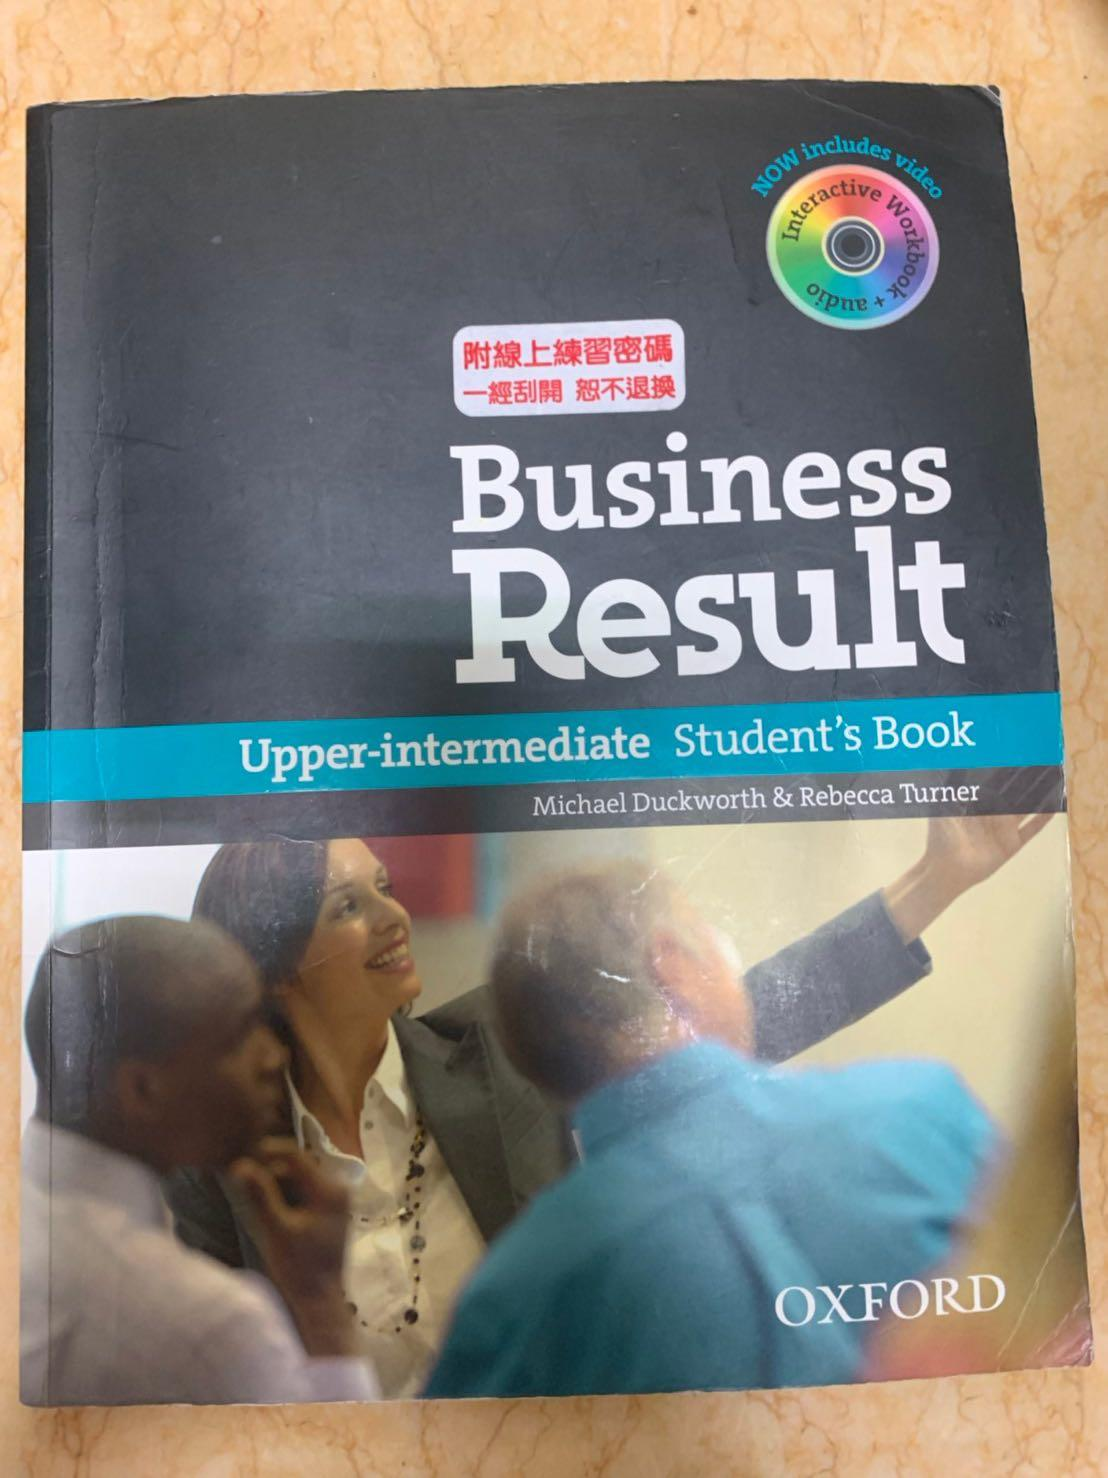 Business Result 英文